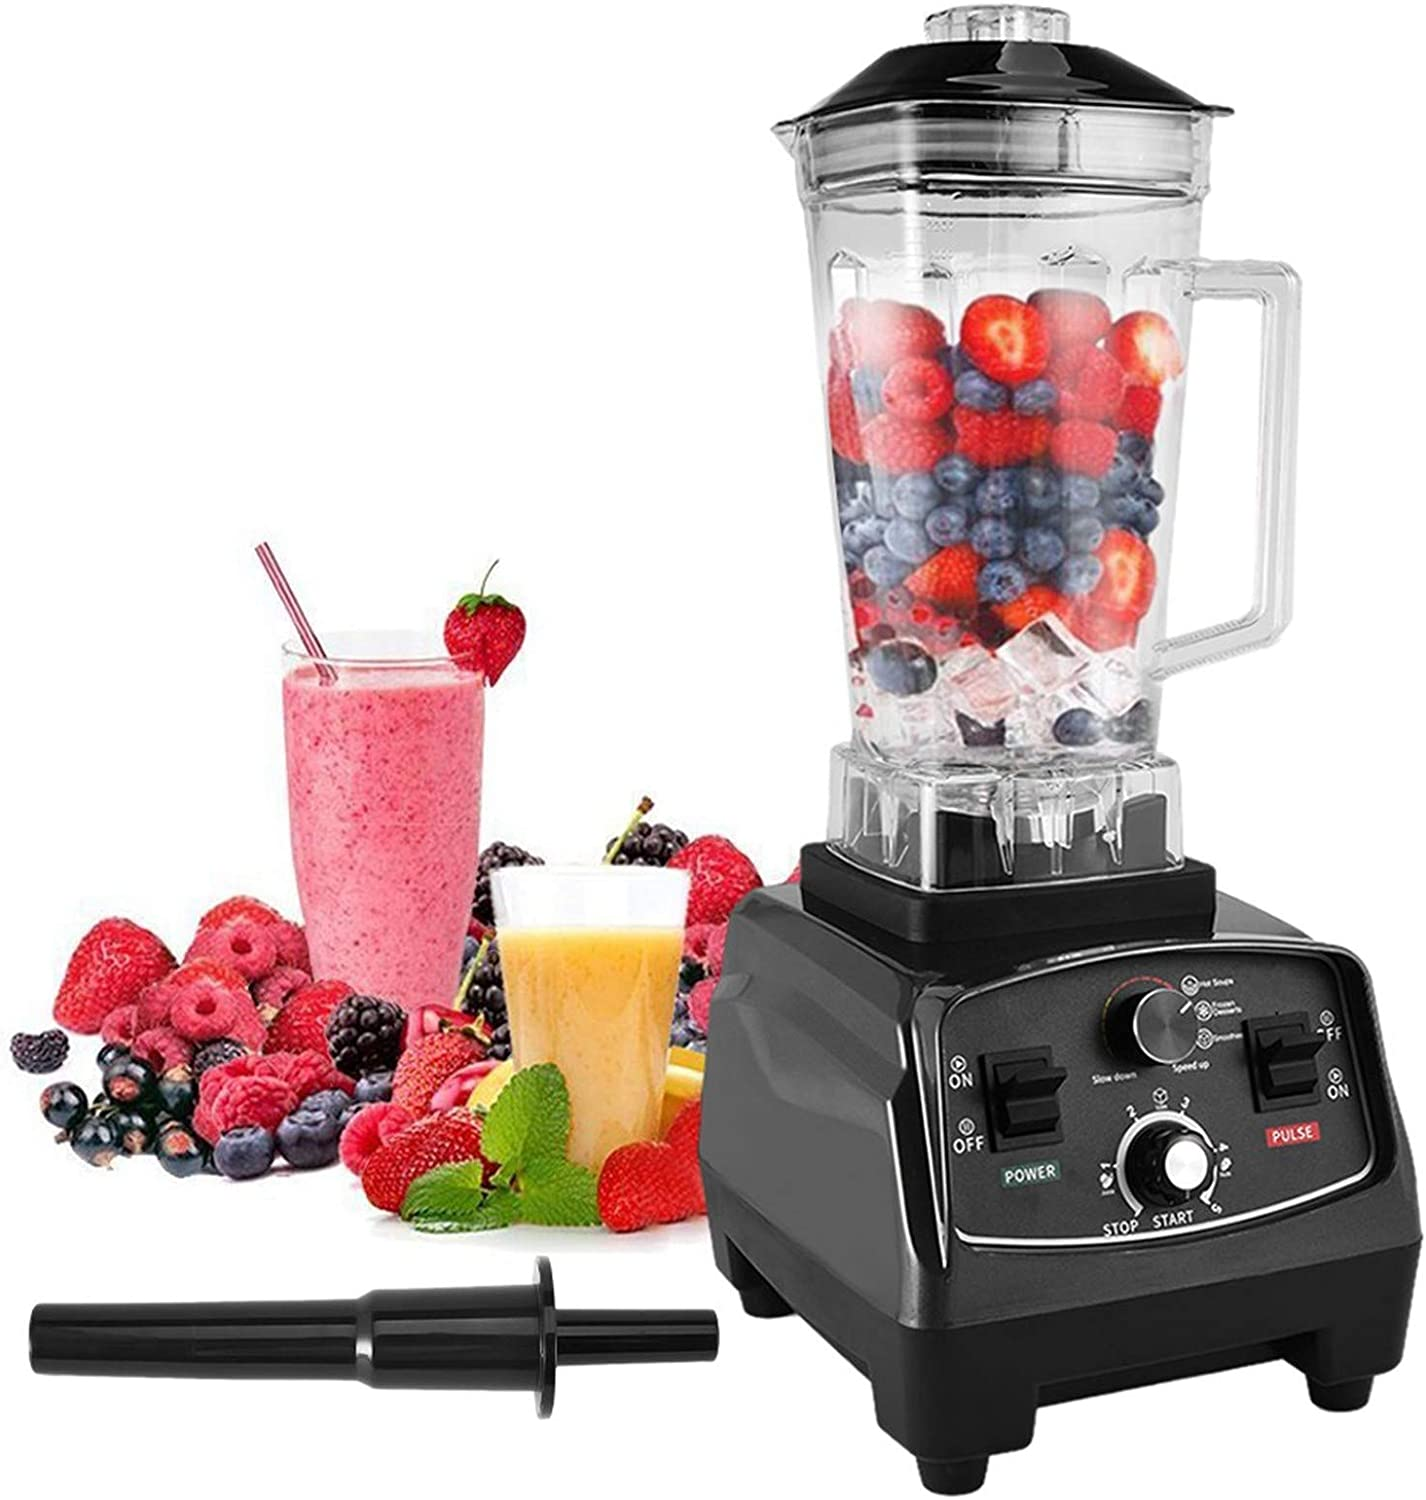 1000W High Speed Professional Blender, Kitchen Countertop Smoothie Maker, Blenders for Fruit Shakes and Smoothies